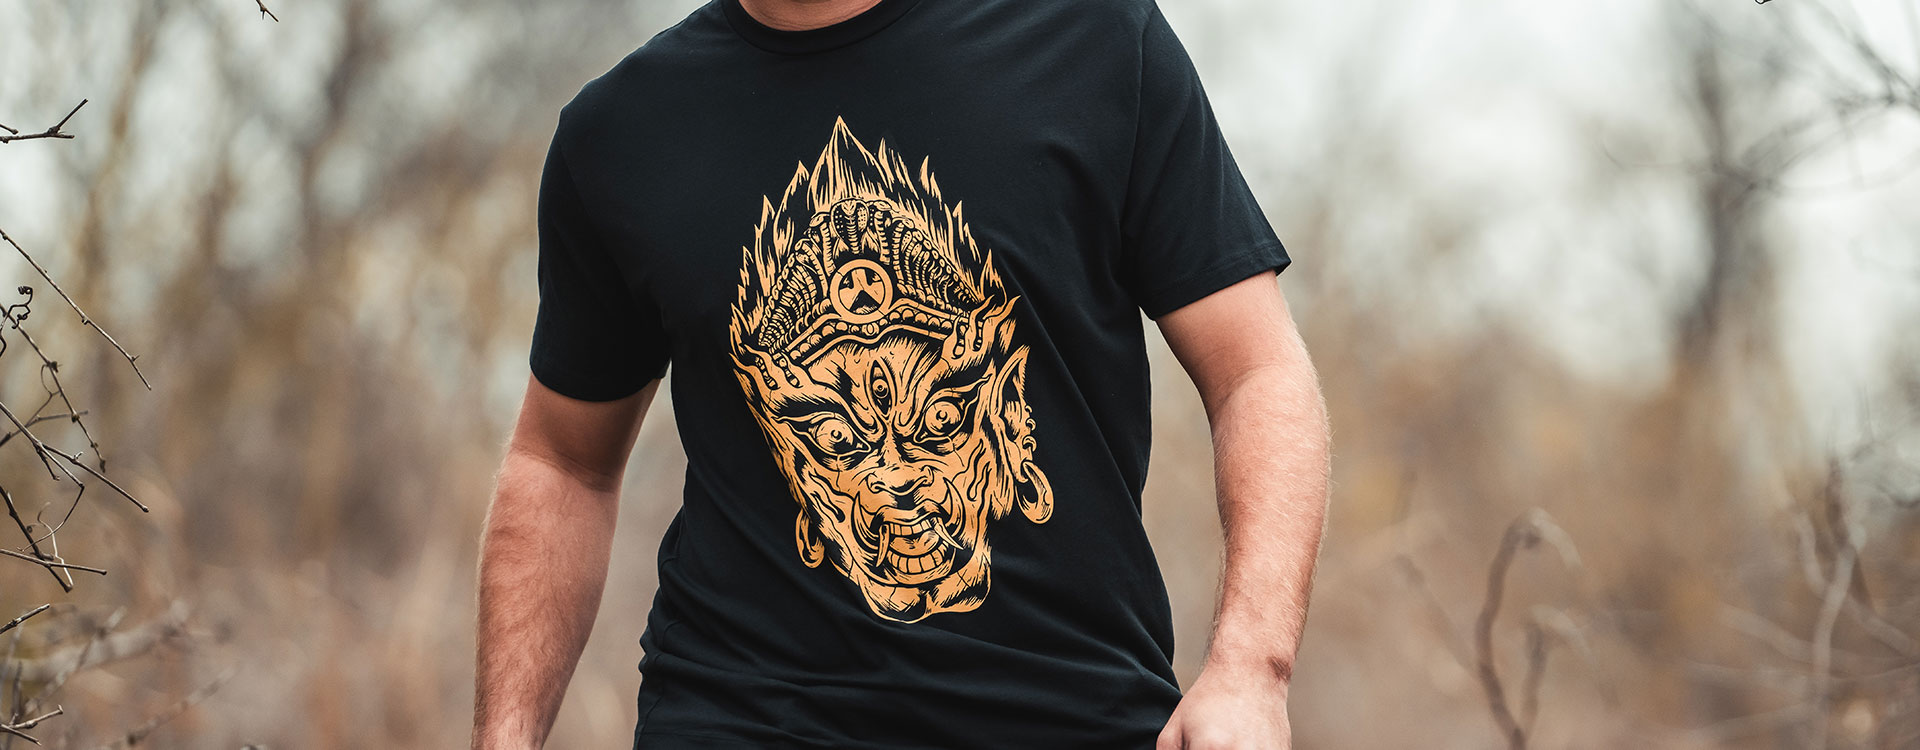 Black Magpul Efreeti Blend Tee with large bronze graphic on front worn by man hiking outdoors